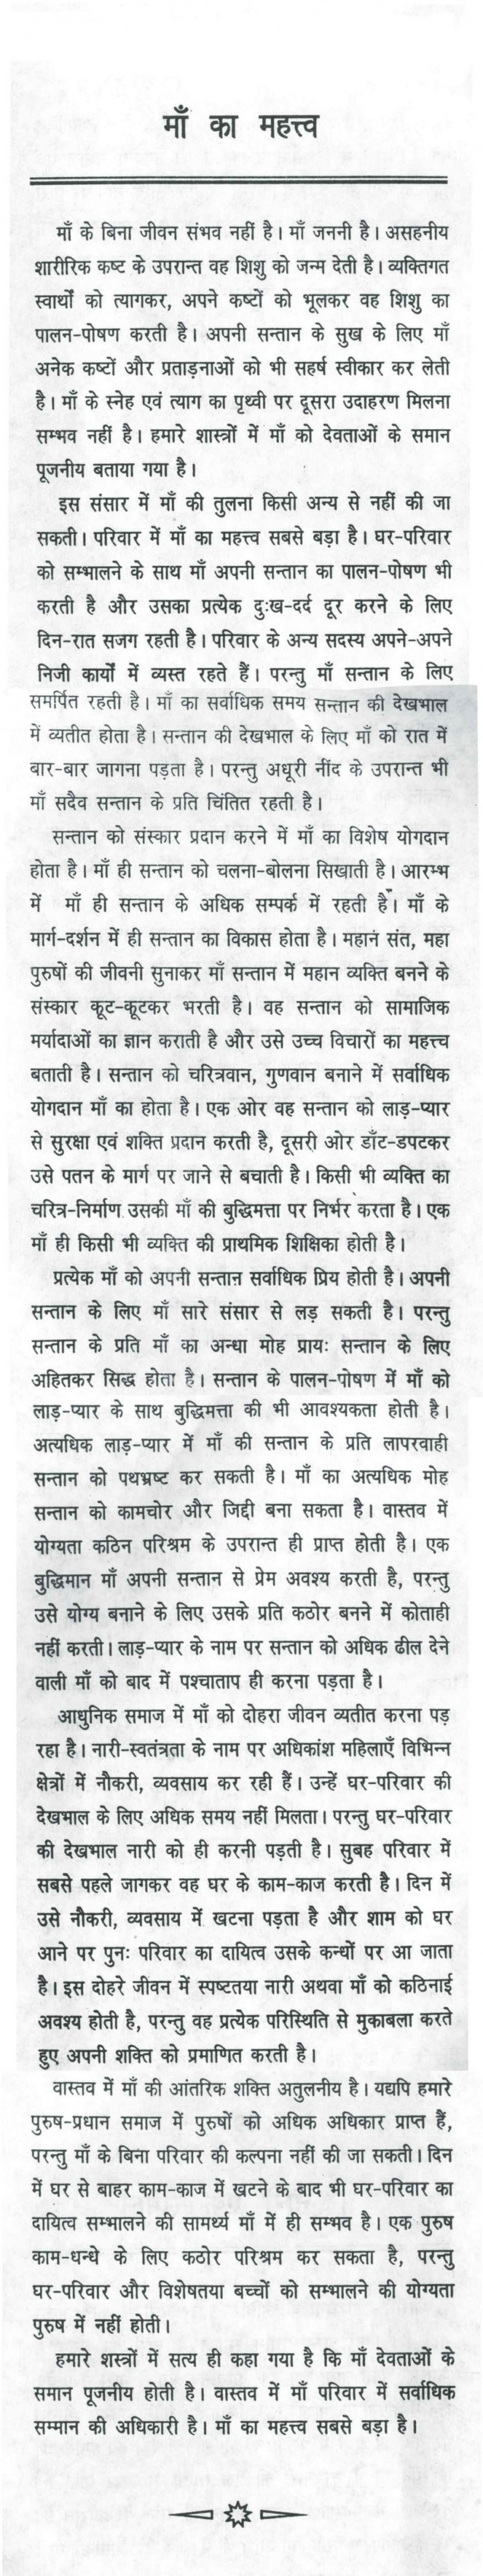 018 My Friend Essay About Helping Short Writing Books Are Best 10058 Th On In Hindi English Teacher Is Mother For Class Example 1048x5588 Excellent A Trouble Narrative 868